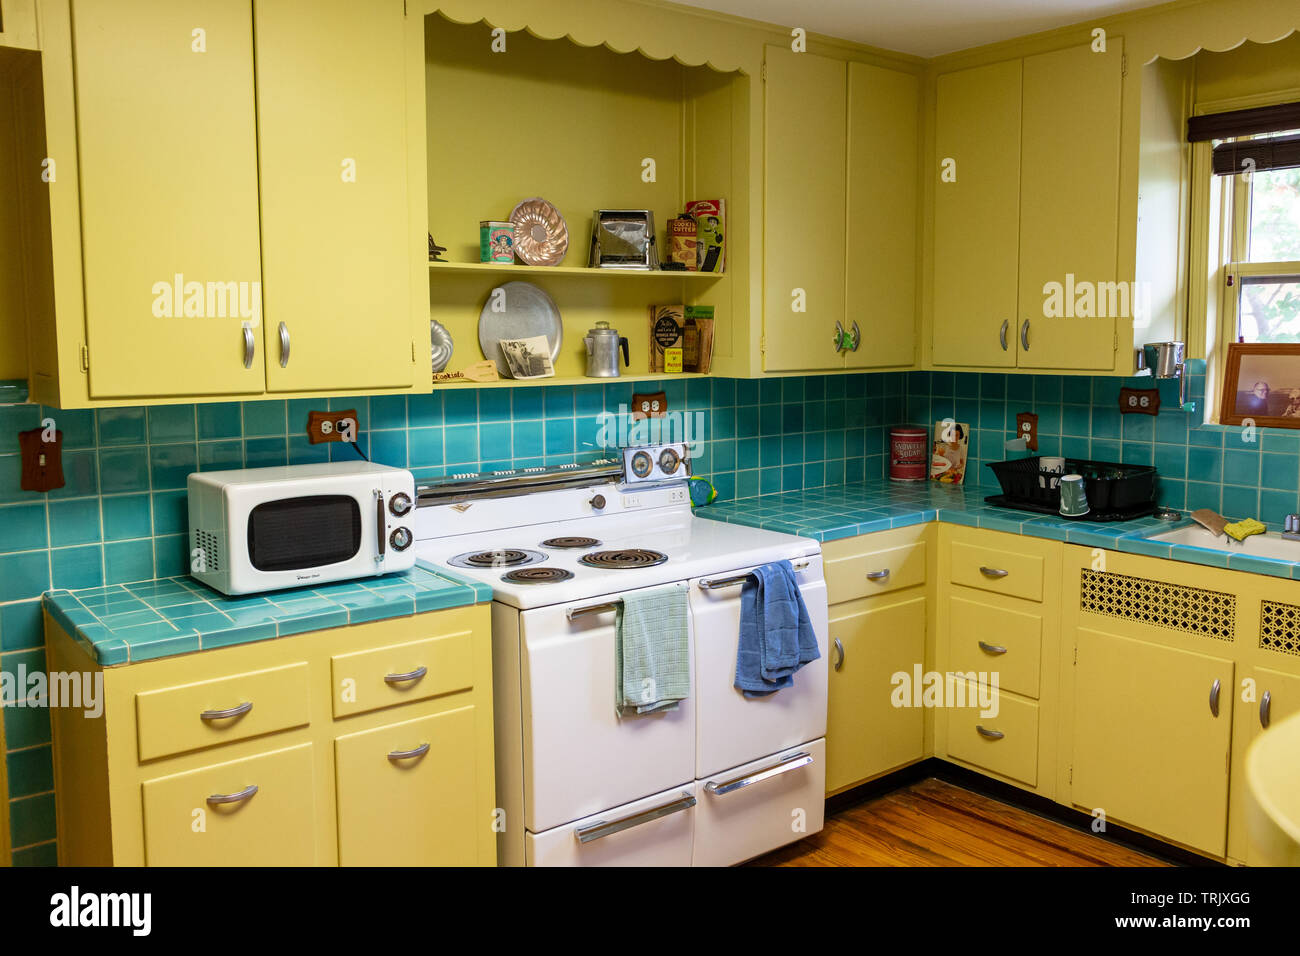 Retro 1940s Style Kitchen With Yellow Cabinets And Blue Tile